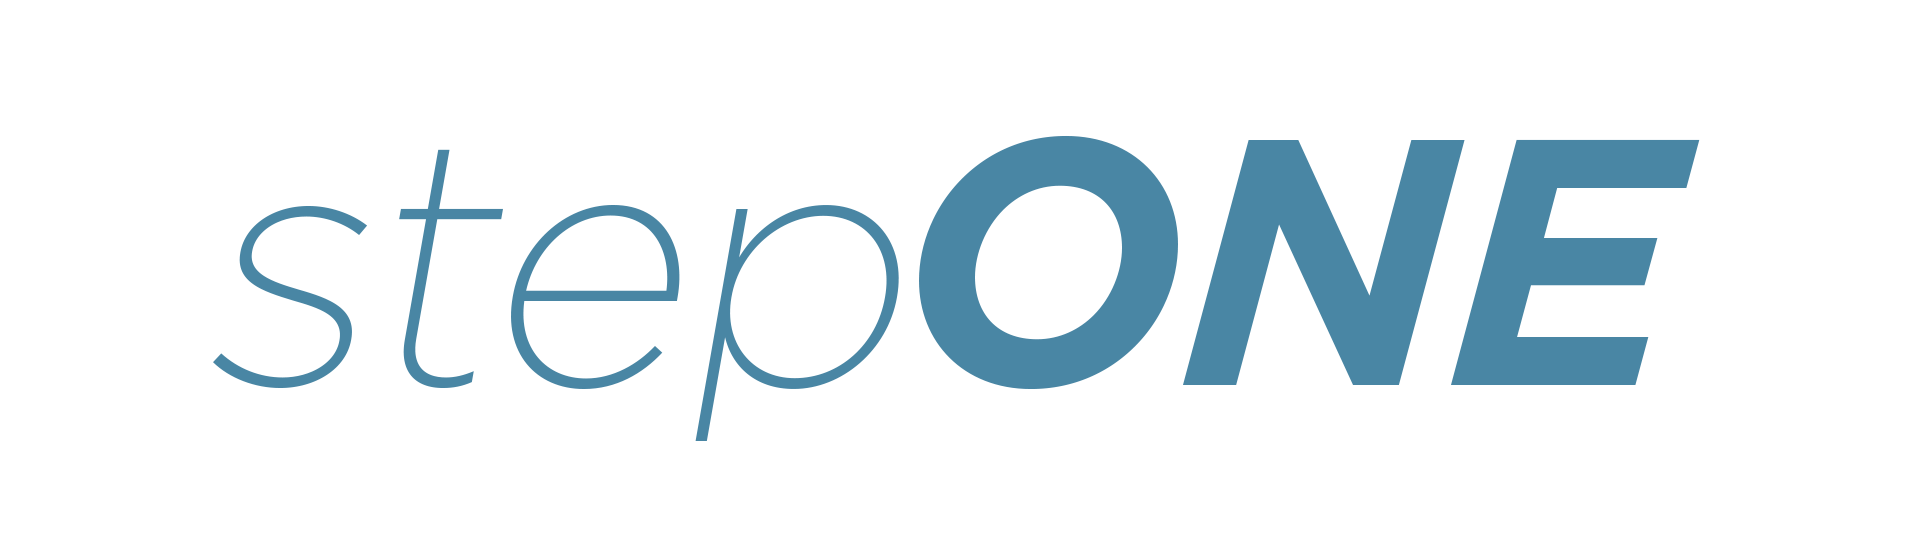 StepONE (blue).png